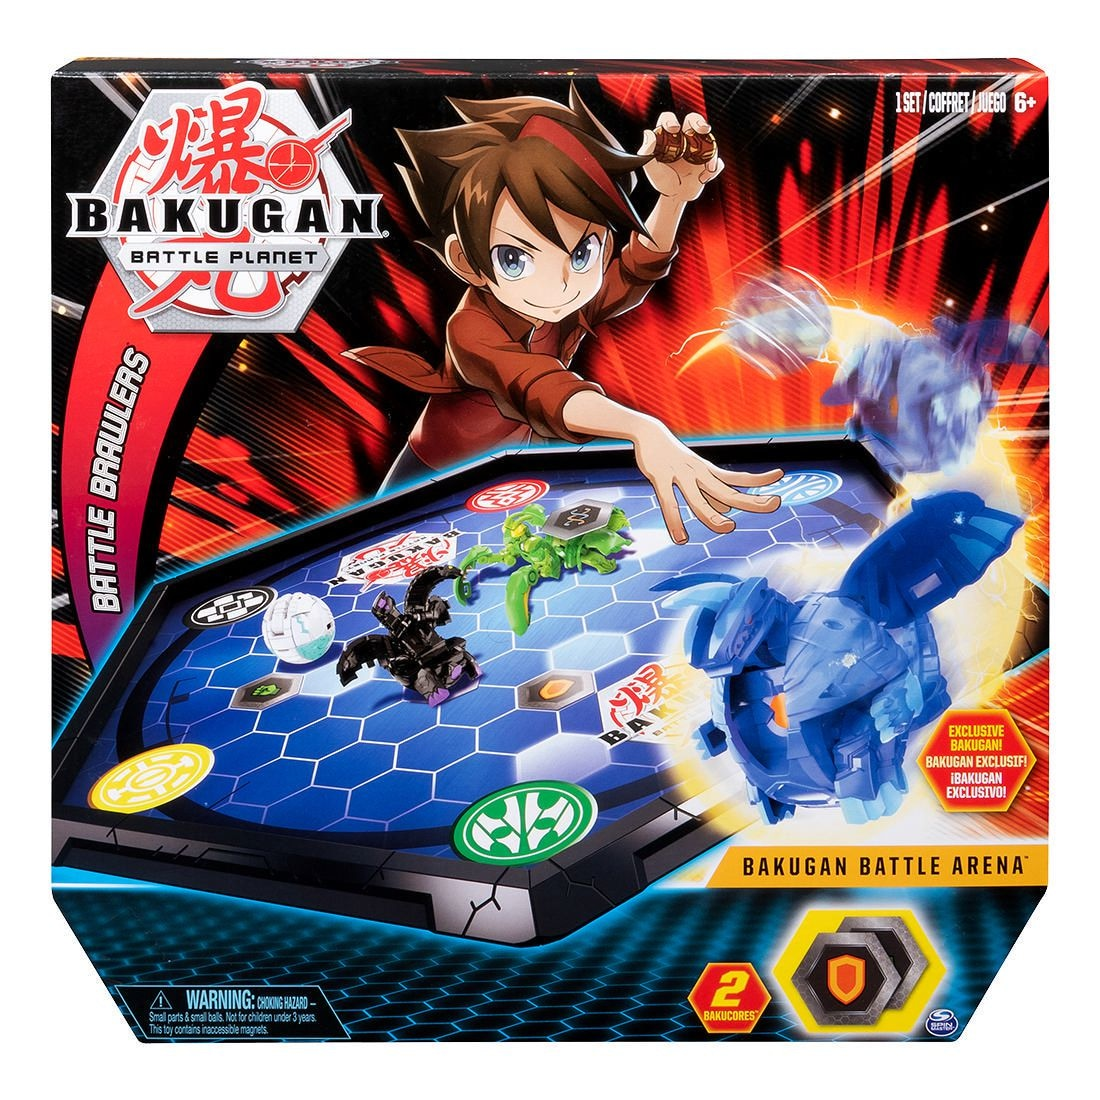 Bakugan Battle Arena Game Board Exclusive Bakugan BakuCores Ability Card Kid Toys